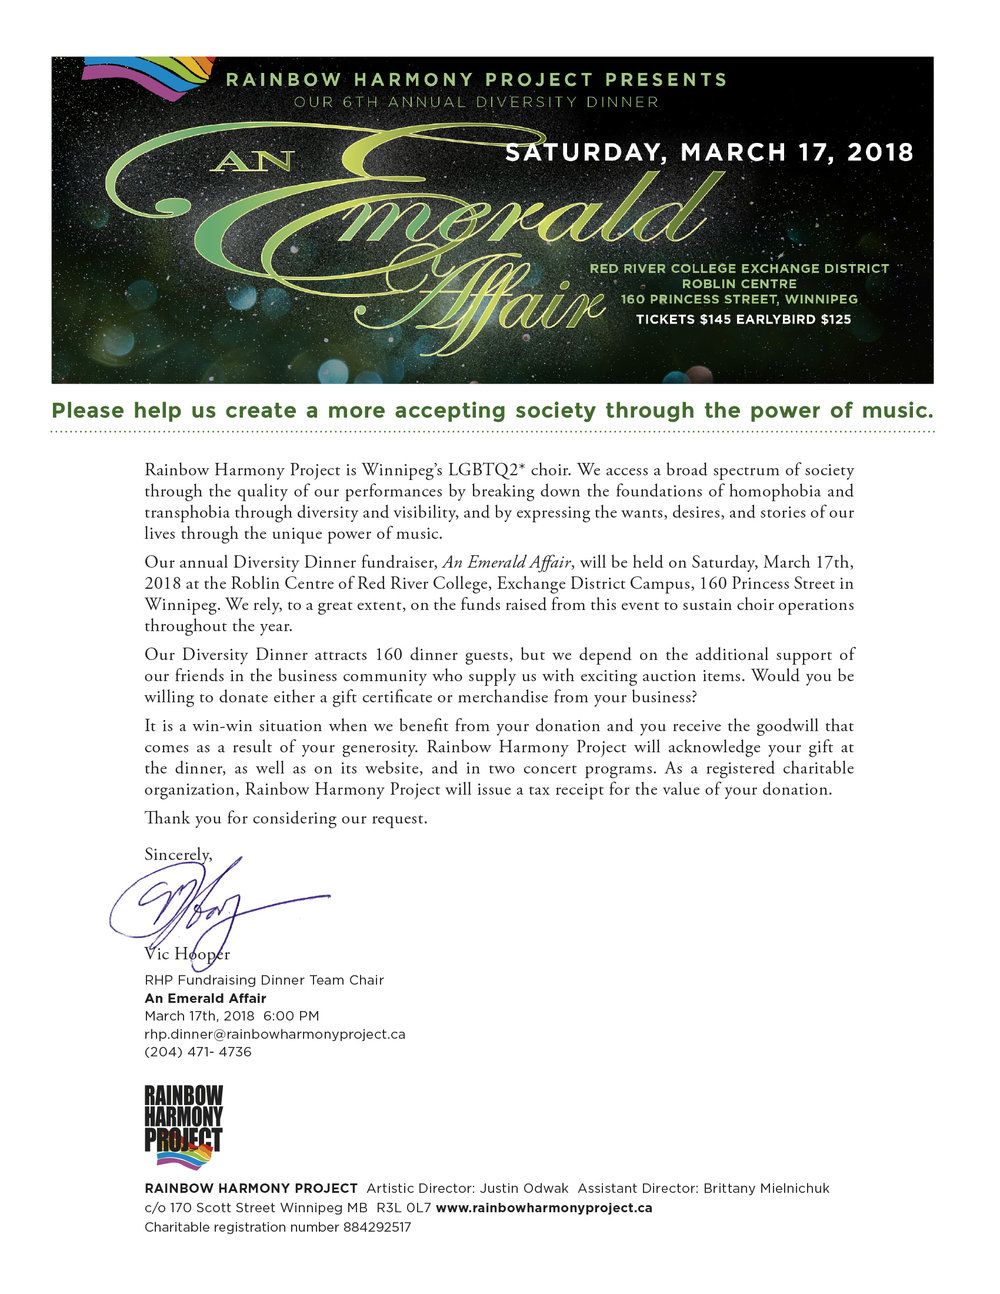 RHP-An-Emerald-Affair-donations-invitation.jpg